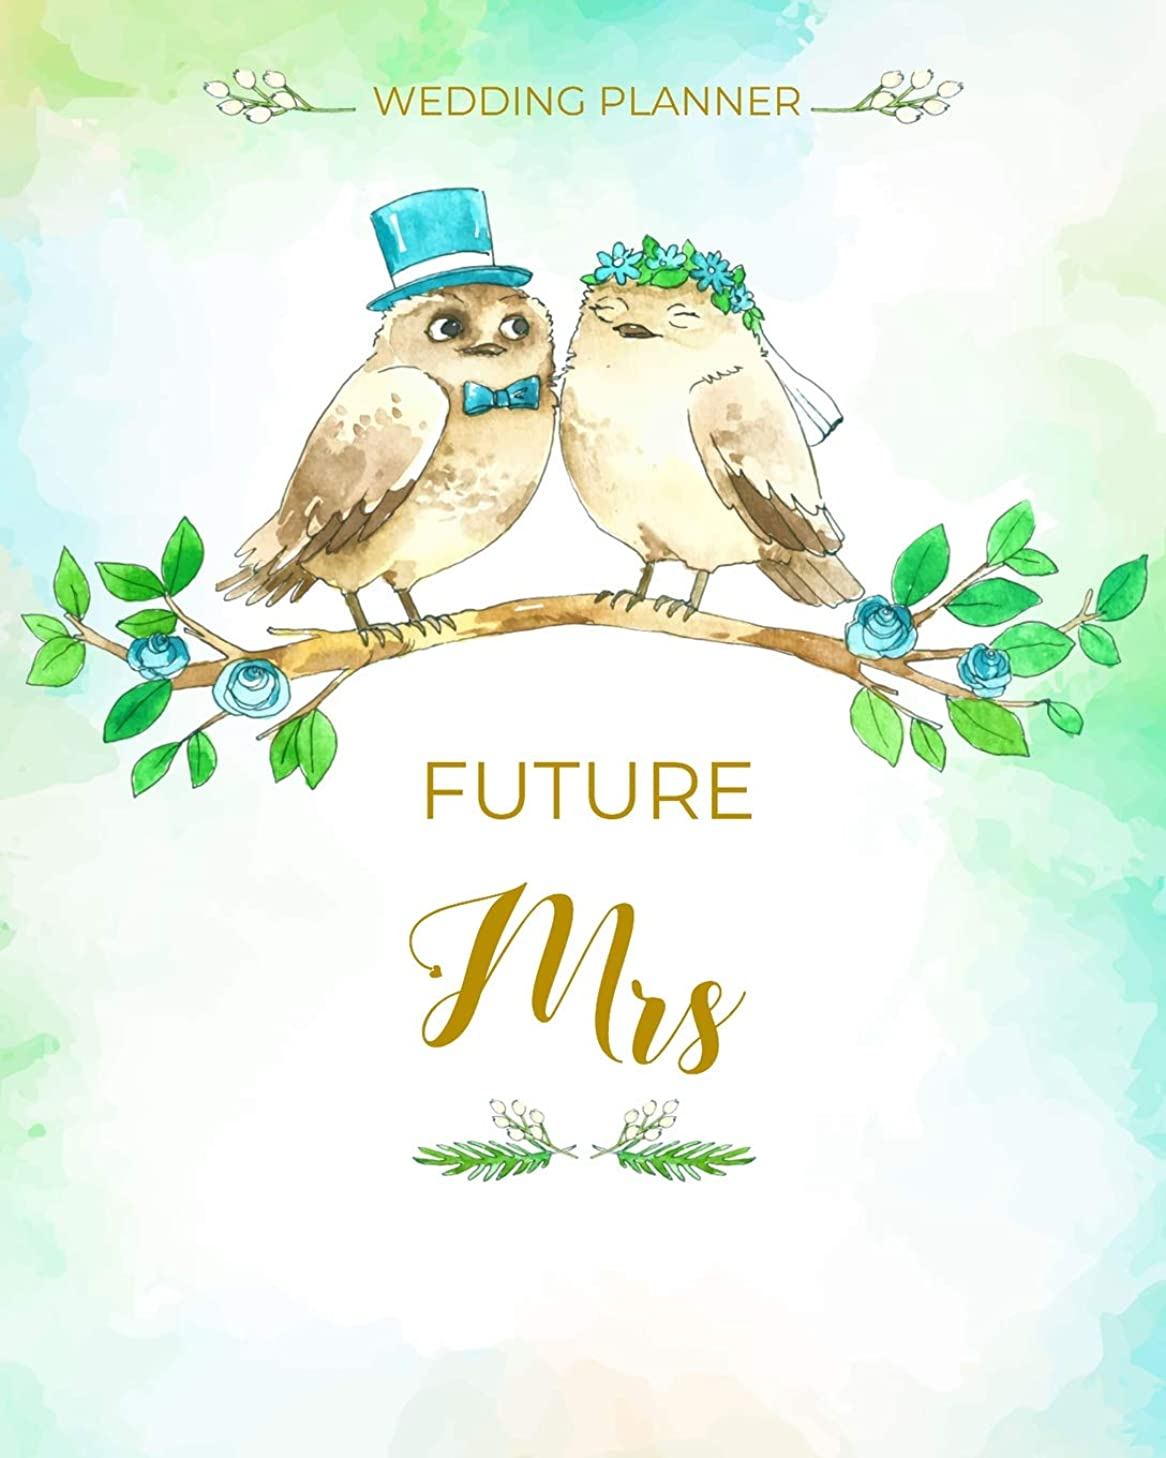 Future Mrs Wedding Planner: Organizer,Checklists, Worksheets,Guest Lists,Party Planning, Essential Tools to Plan the Perfect Wedding on a Small Budget ... Want-Beautiful Flower Cover Design(Vol.1)